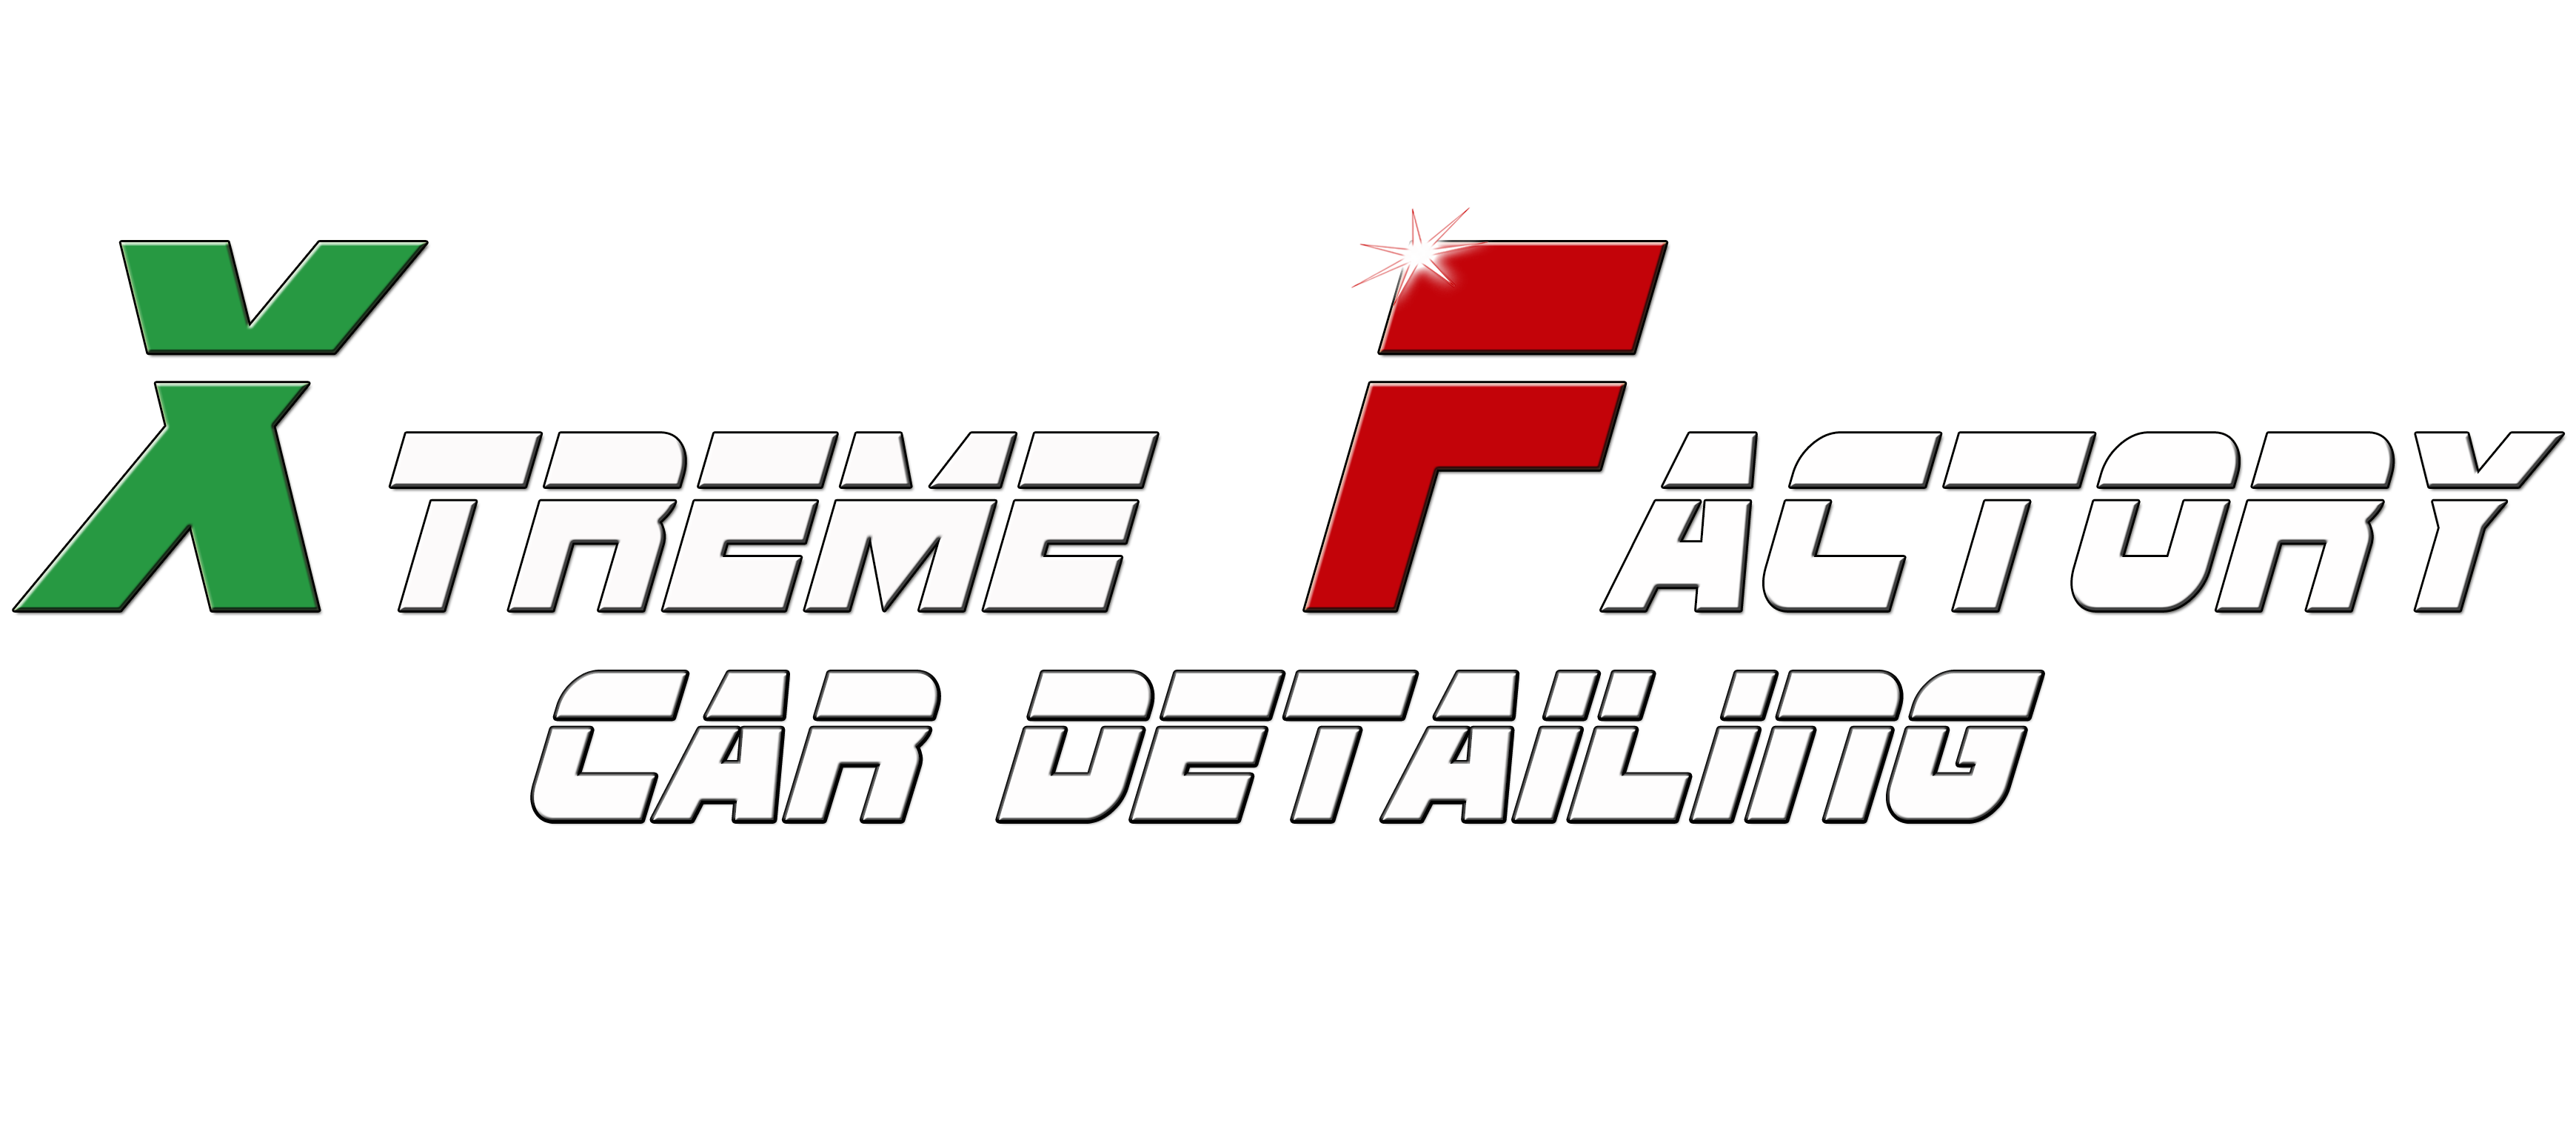 Xtreme-Factory Car Detailing